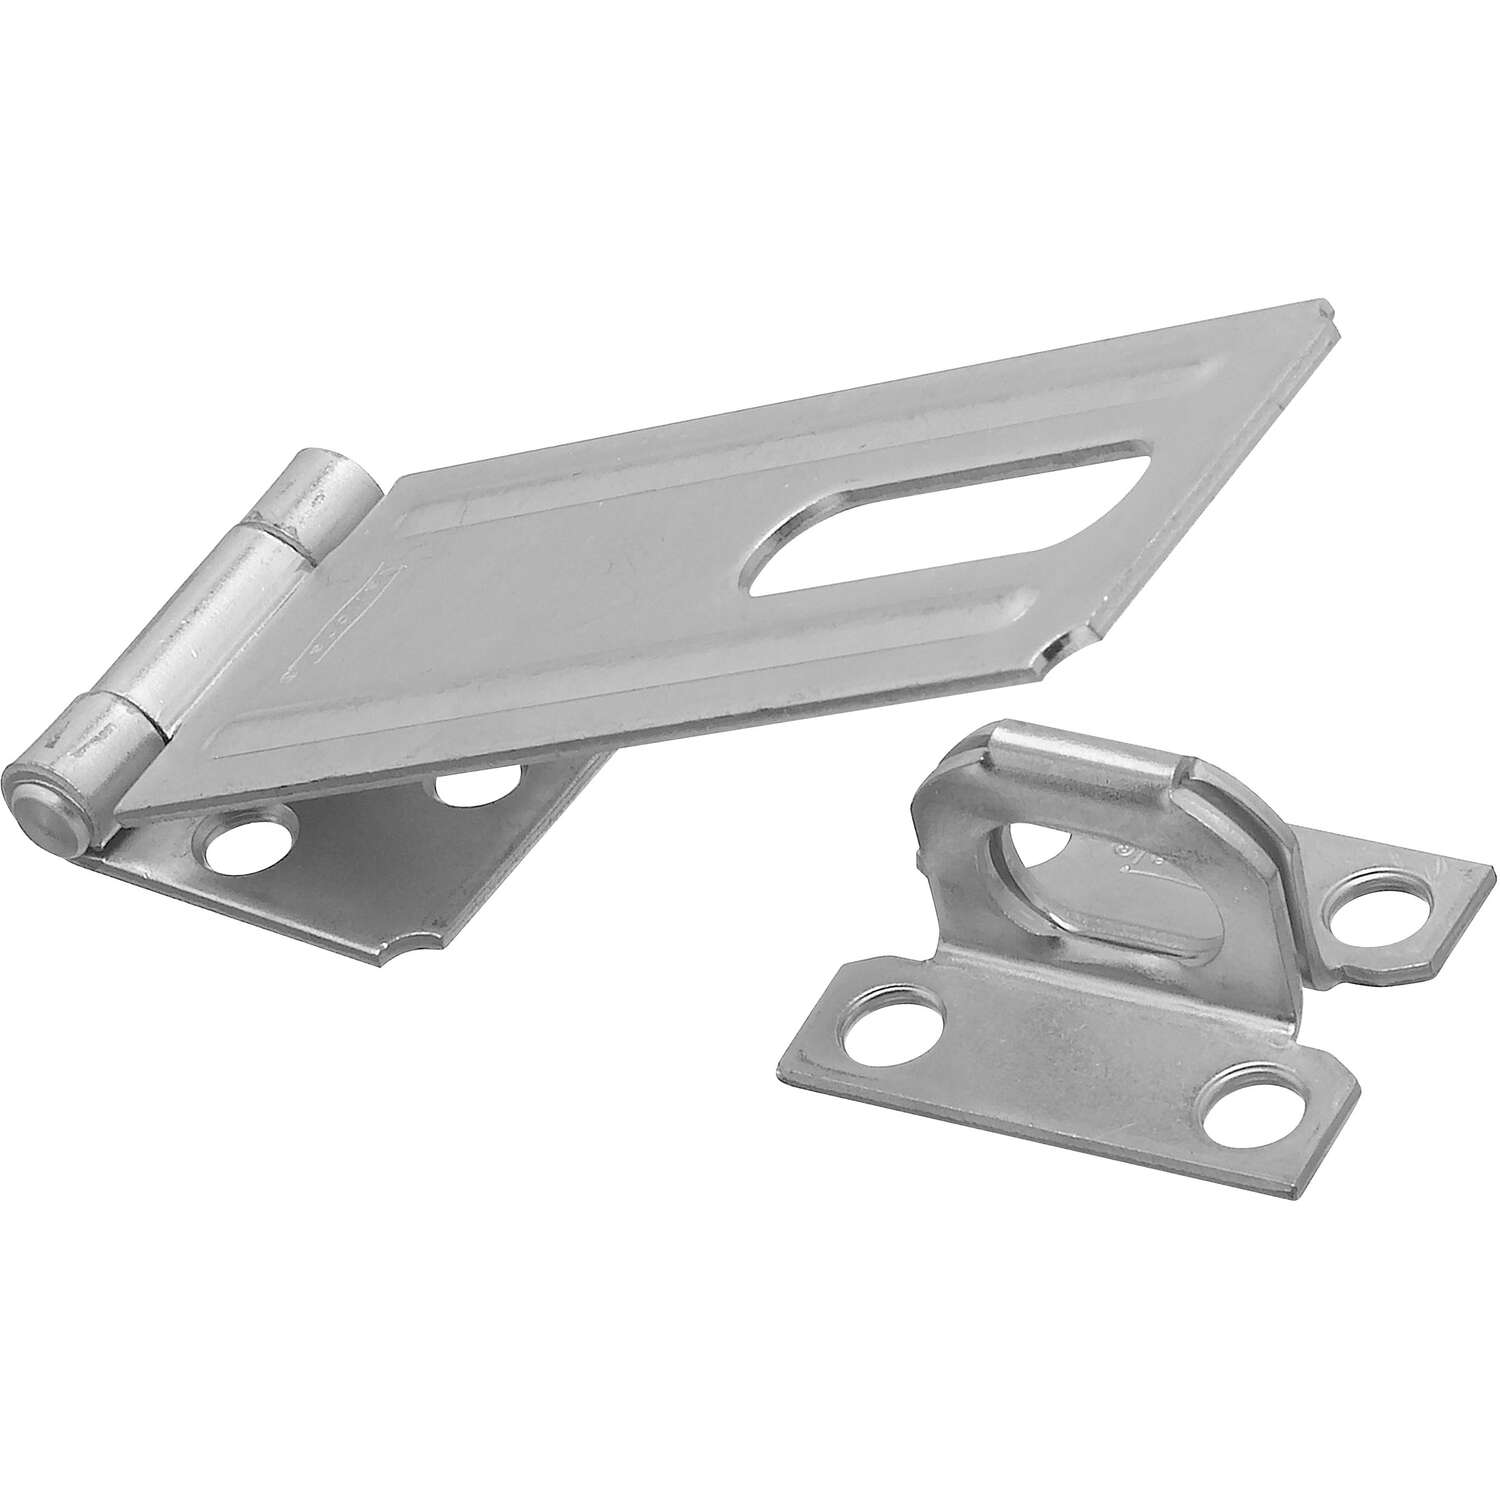 National Hardware  Zinc-Plated  Steel  4-1/2 in. L Safety Hasp  1 pk